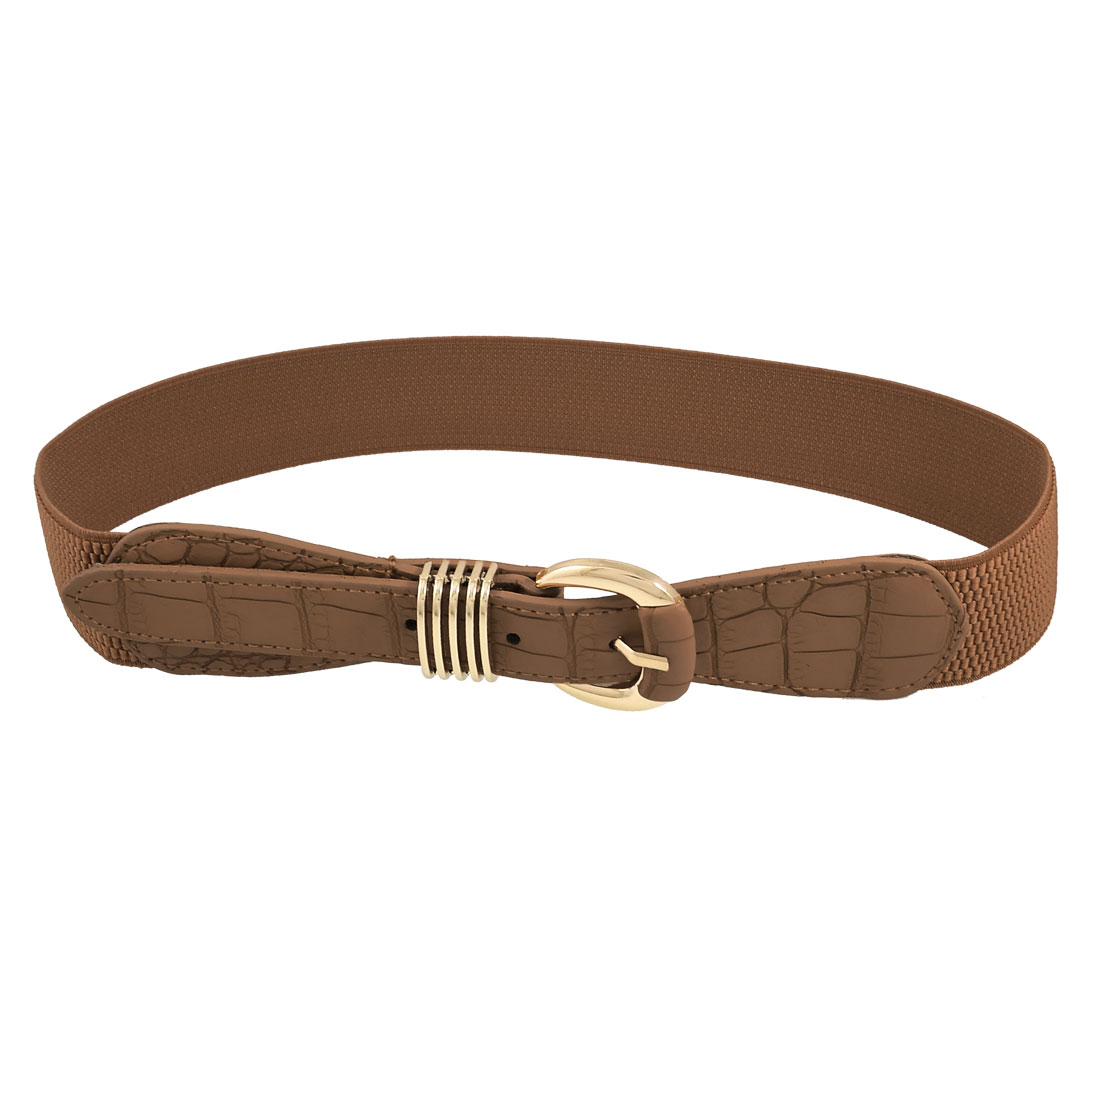 Crocodile Printed Faux Leather Ladies Brown Stretchy Waist Belt Cinch Band